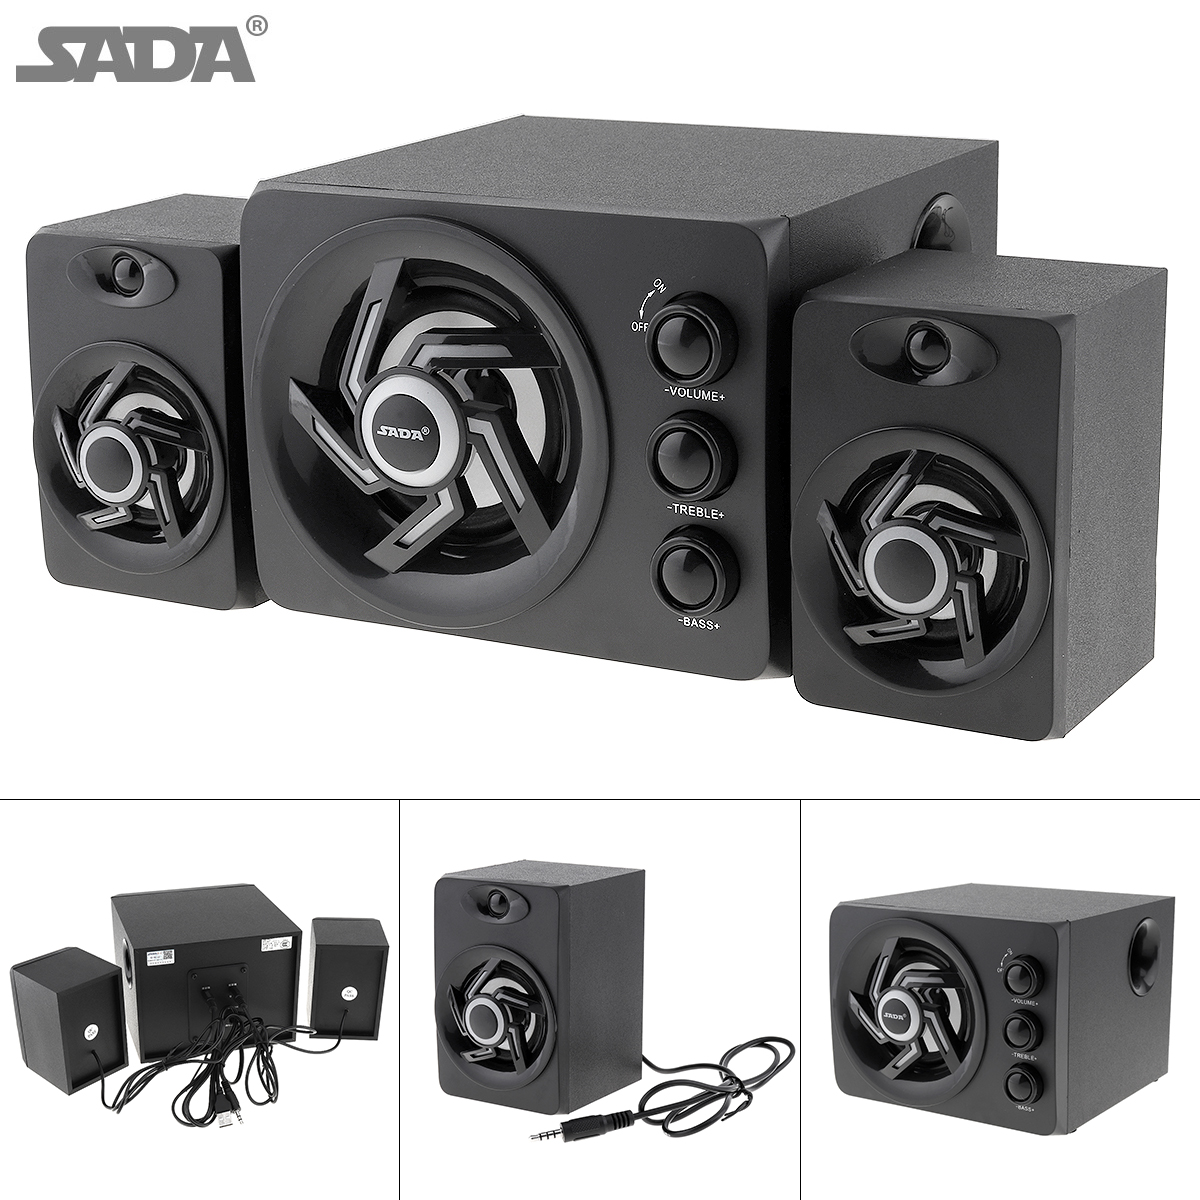 SADA 2018 Newest wooden 3D Stereo Subwoofer 100% Bass PC Speaker Portable Music DJ USB Computer Speakers For laptop Phone TV